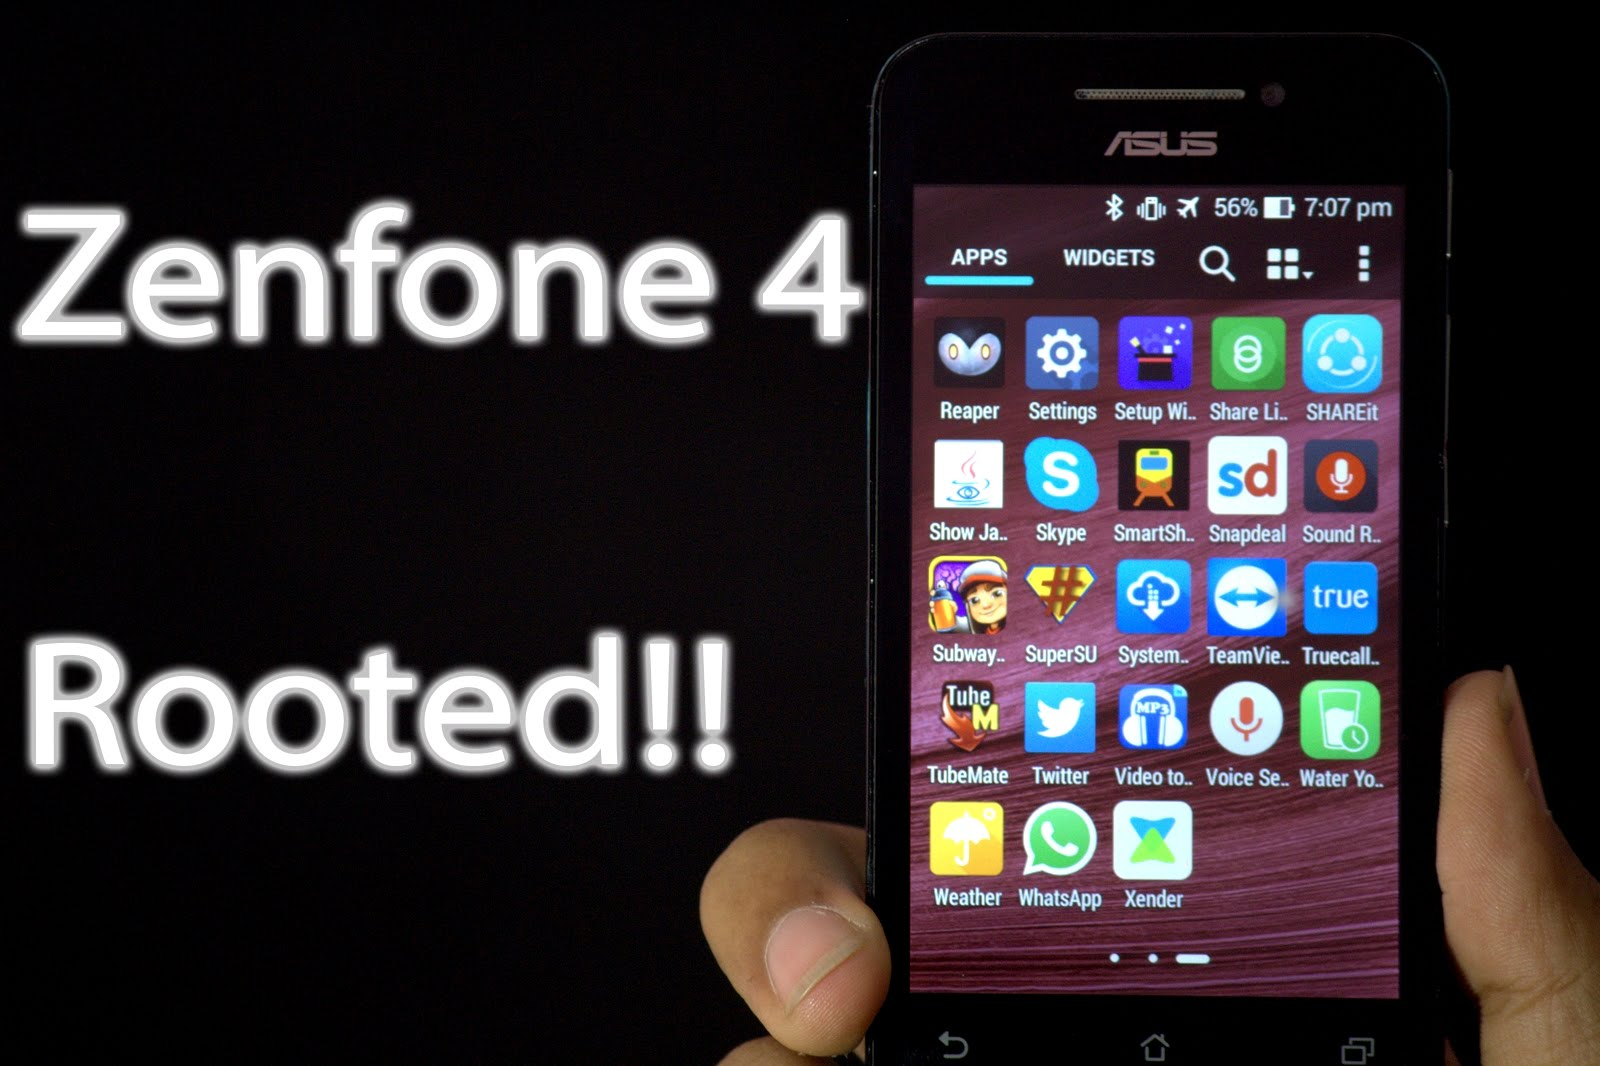 How to Root Asus Zenfone with PC - Tutorial & Guide